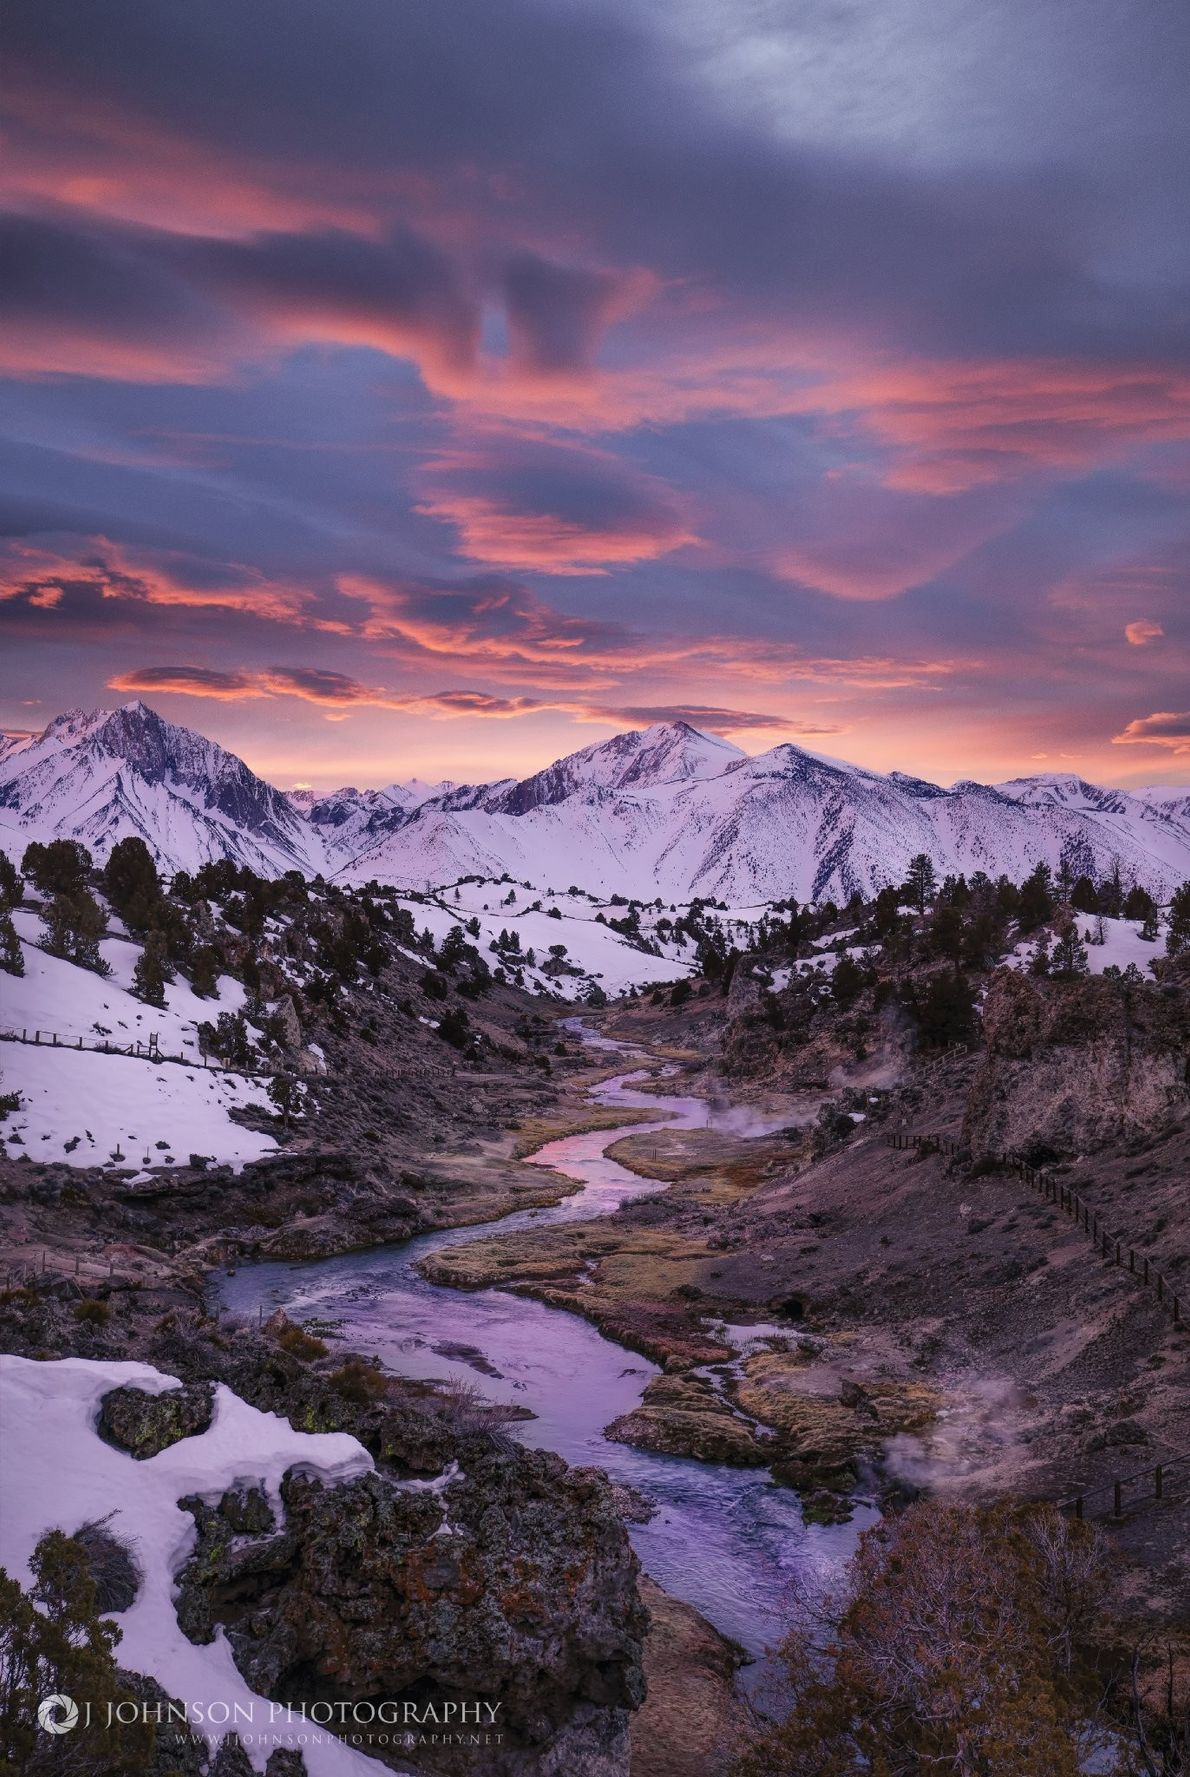 Your Shot photographer Jeremy Johnson documented this dreamy scene of Hot Creek near Mammoth Lakes, California.